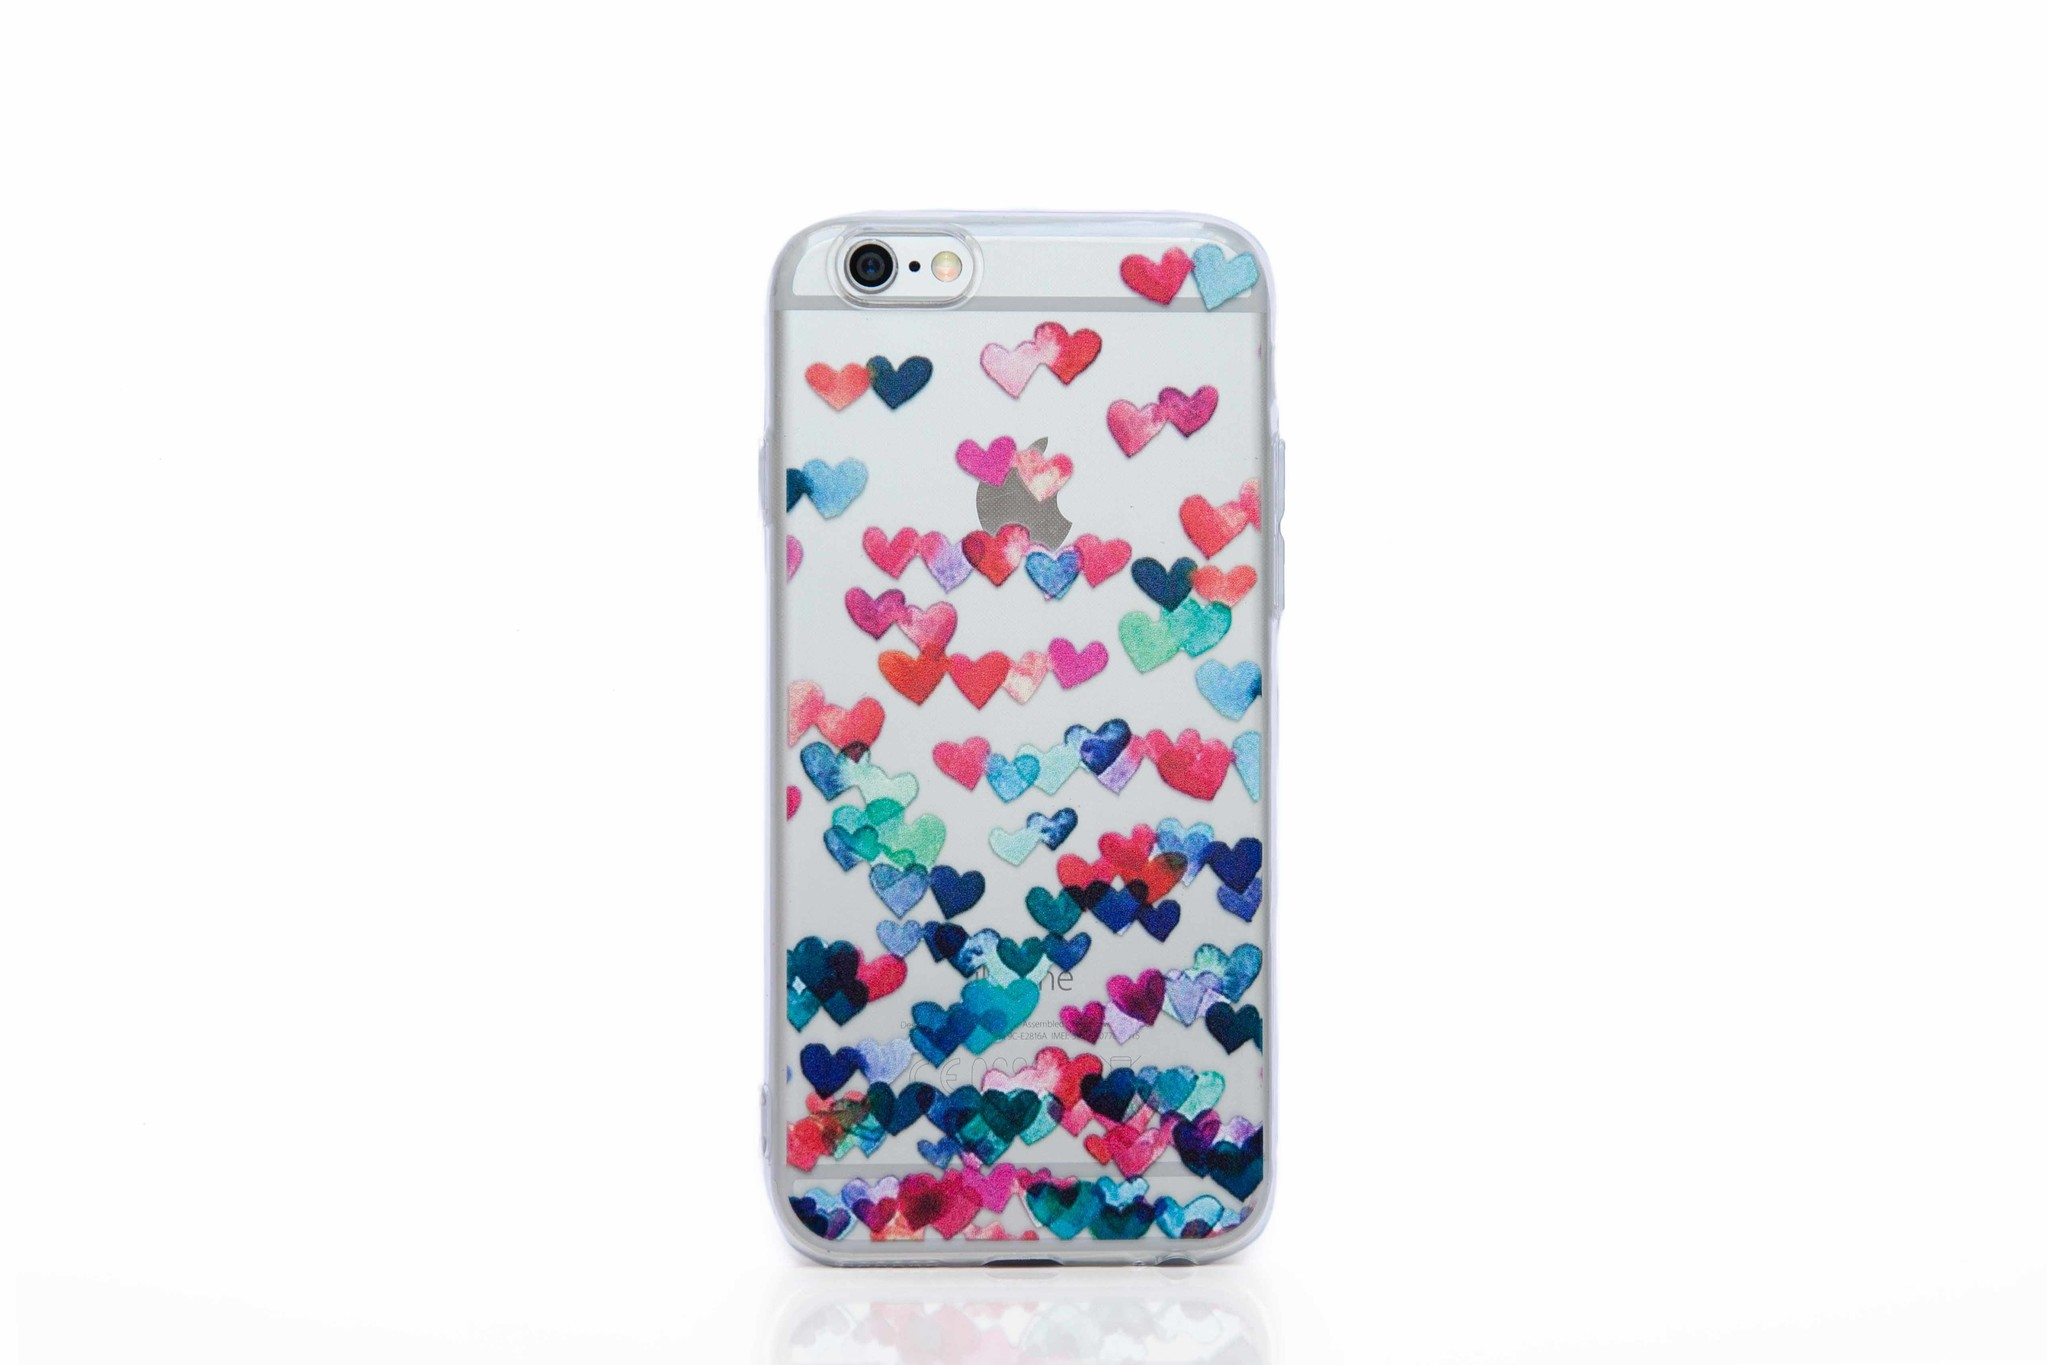 Smartphonehoesje iPhone 6s | Summervibes (met hartjes) | Multicolor